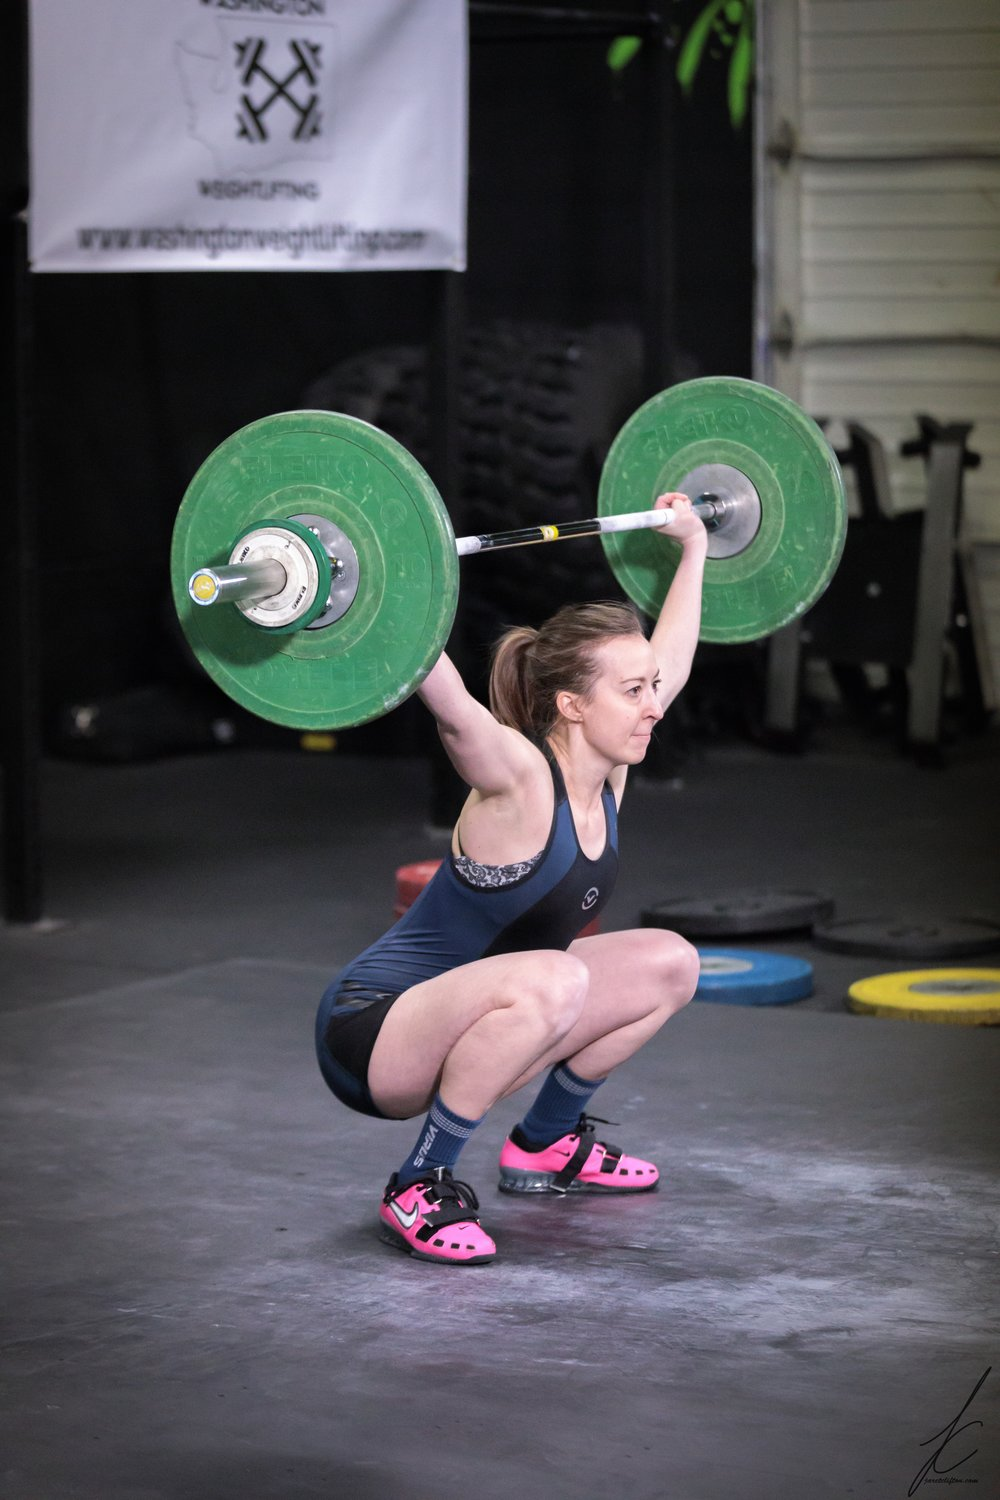 Morgan Chaput CF-L1   morgan started CrossFit in August 2014, when her sister dragged her to her first class. she got her CF-L1 during Snowmageddon in February 2019. morgan LOVEs snatching and box jumps and could live without chippers and WODs that involve running. she loves dropping into CF gyms when traveling and In real life, she is the probation attorney at Pierce County Juvenile Court and an award winning quilter!